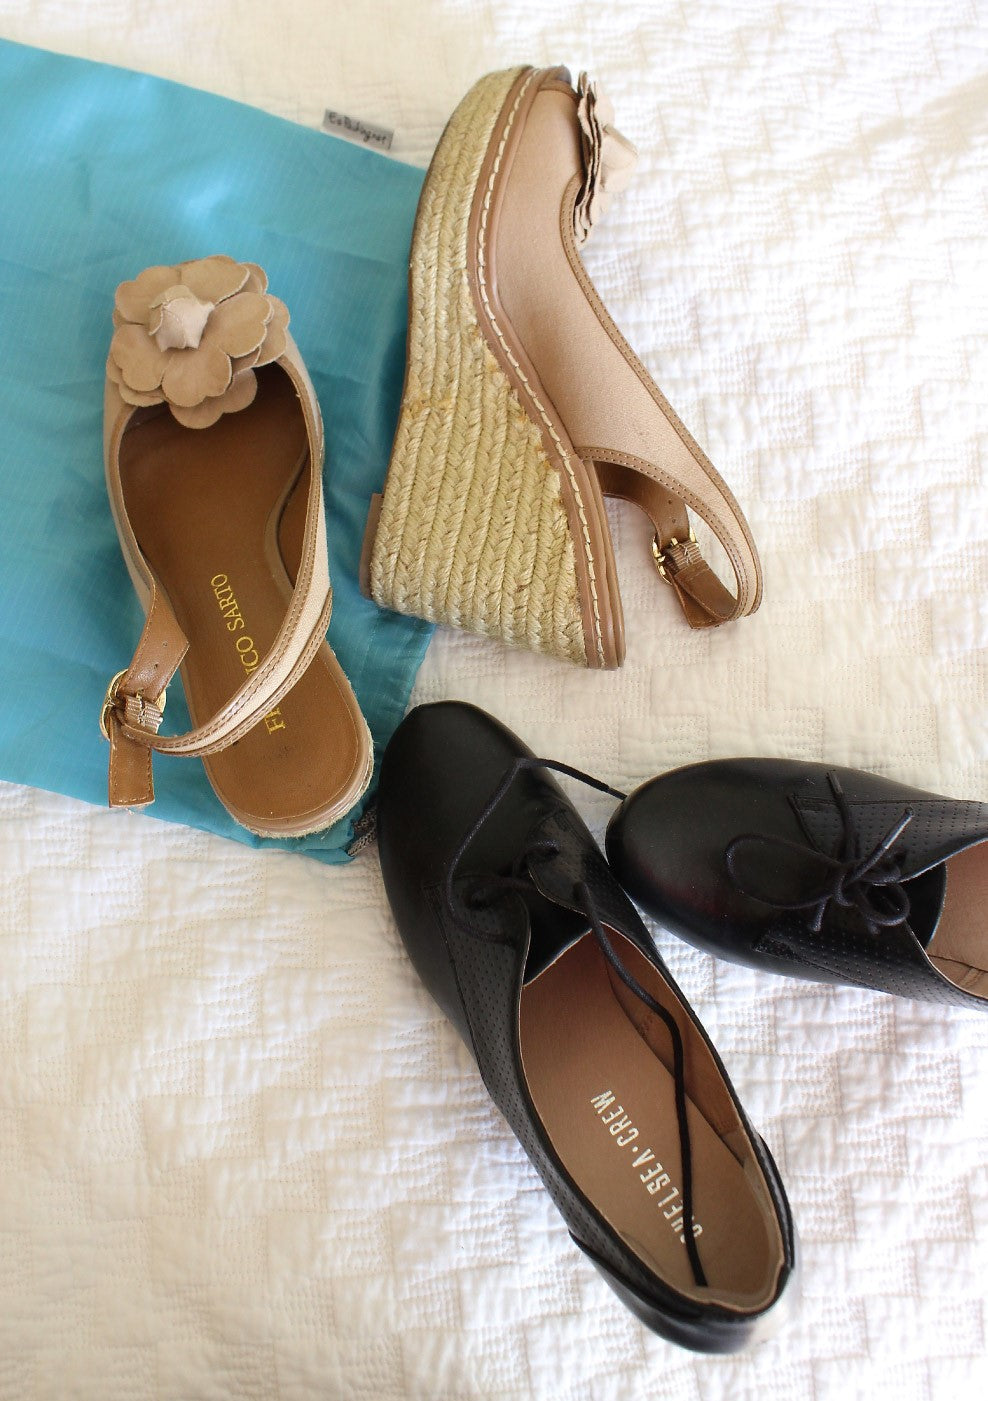 Heels and Wedges in Occasion